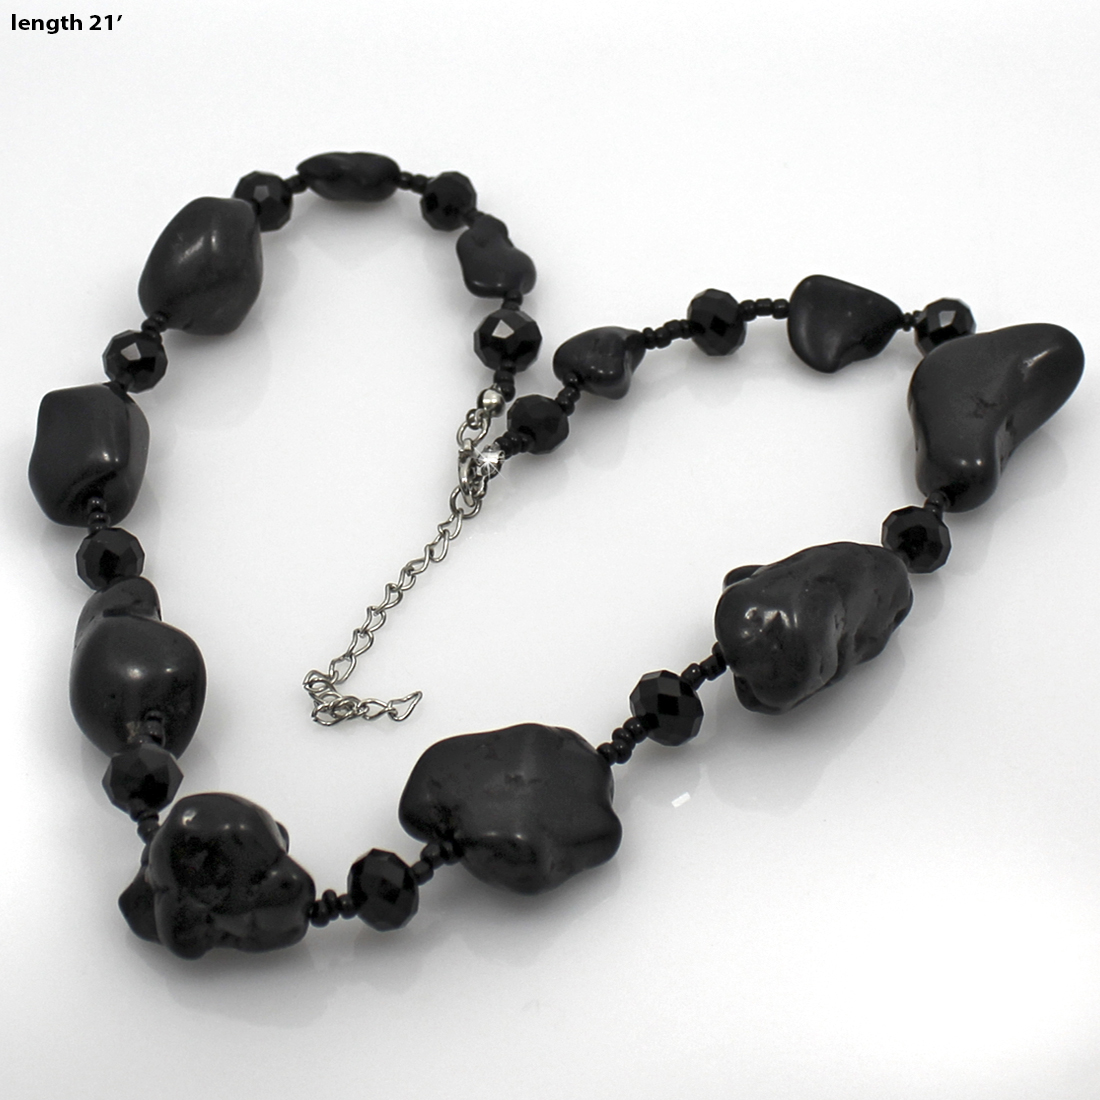 NKL01-BLACK - NKL01-BLACK WHOLESALE GENUINE CRYSTAL AND GLASS NECKLACE SET